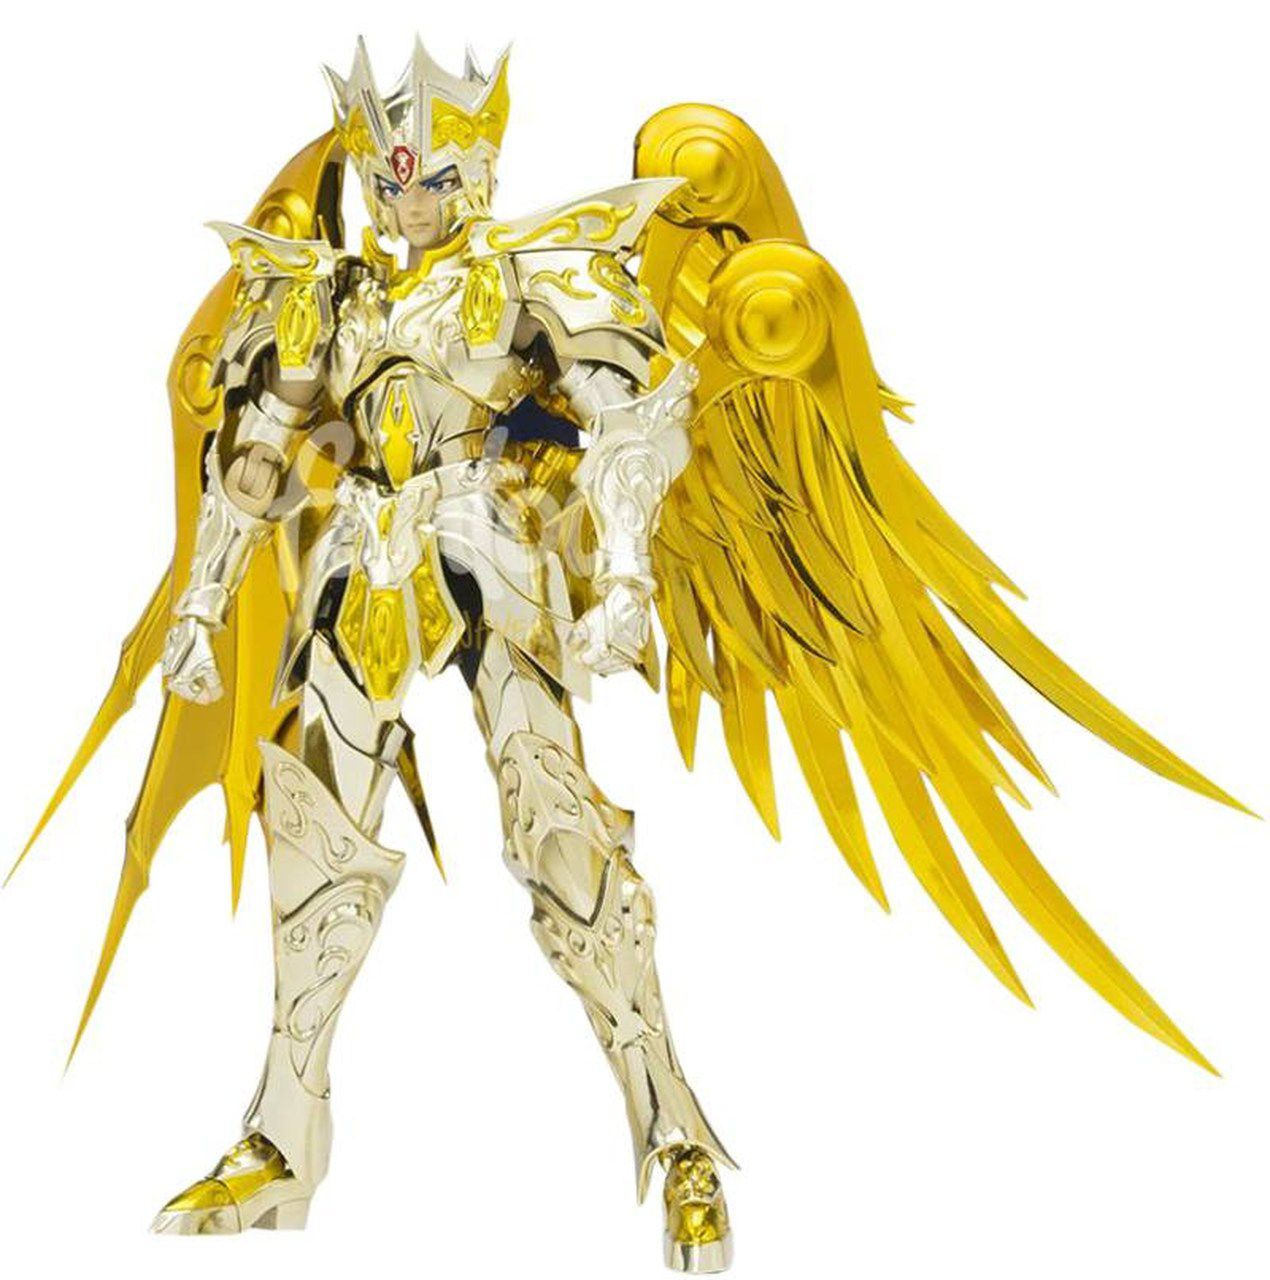 Action Figure Saga de Gêmeos (Gemini Saga) God Cloth: Os Cavaleiros do Zodíaco Saint Cloth Myth EX Soul Of Gold - Bandai